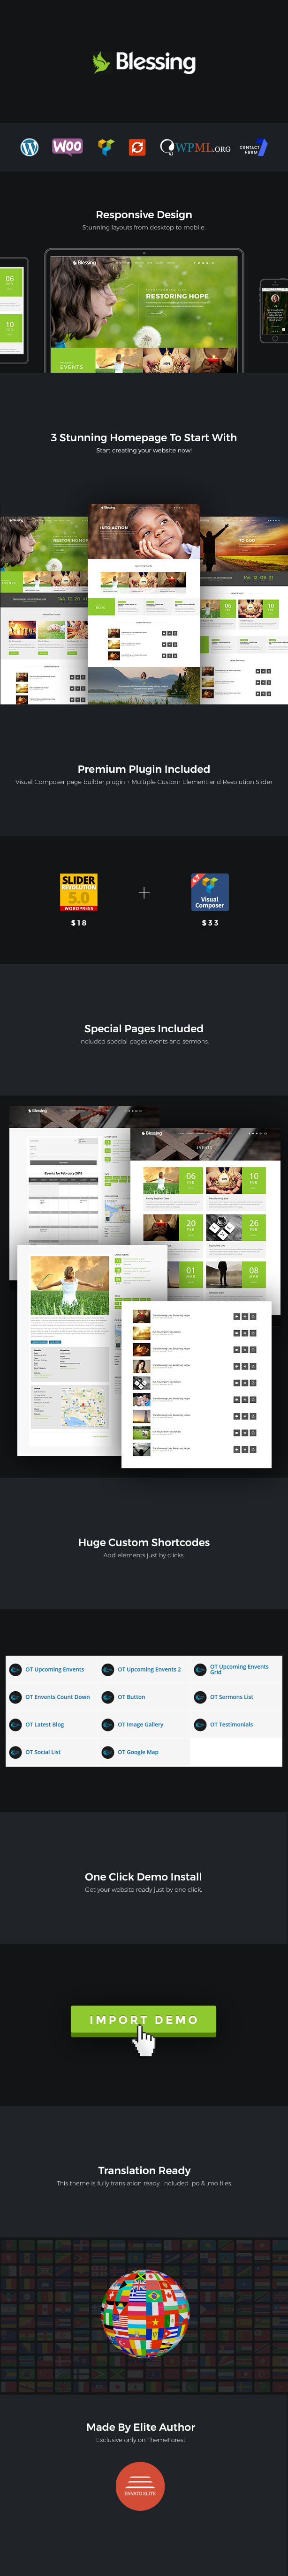 Blessing | Responsive WordPress Theme for Church Websites